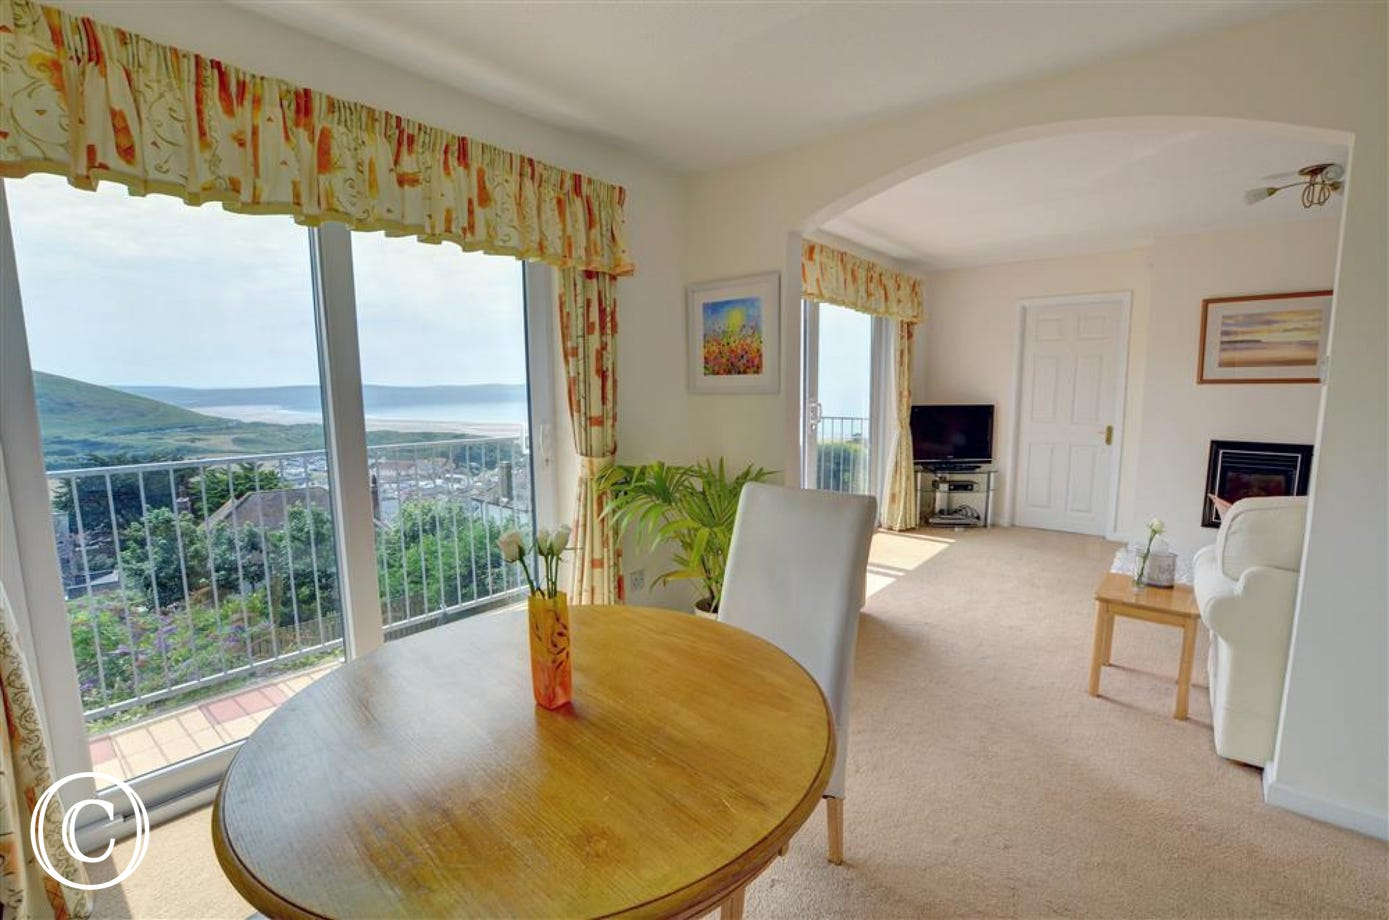 The dining area with patio doors looking towards Woolacombe beach.